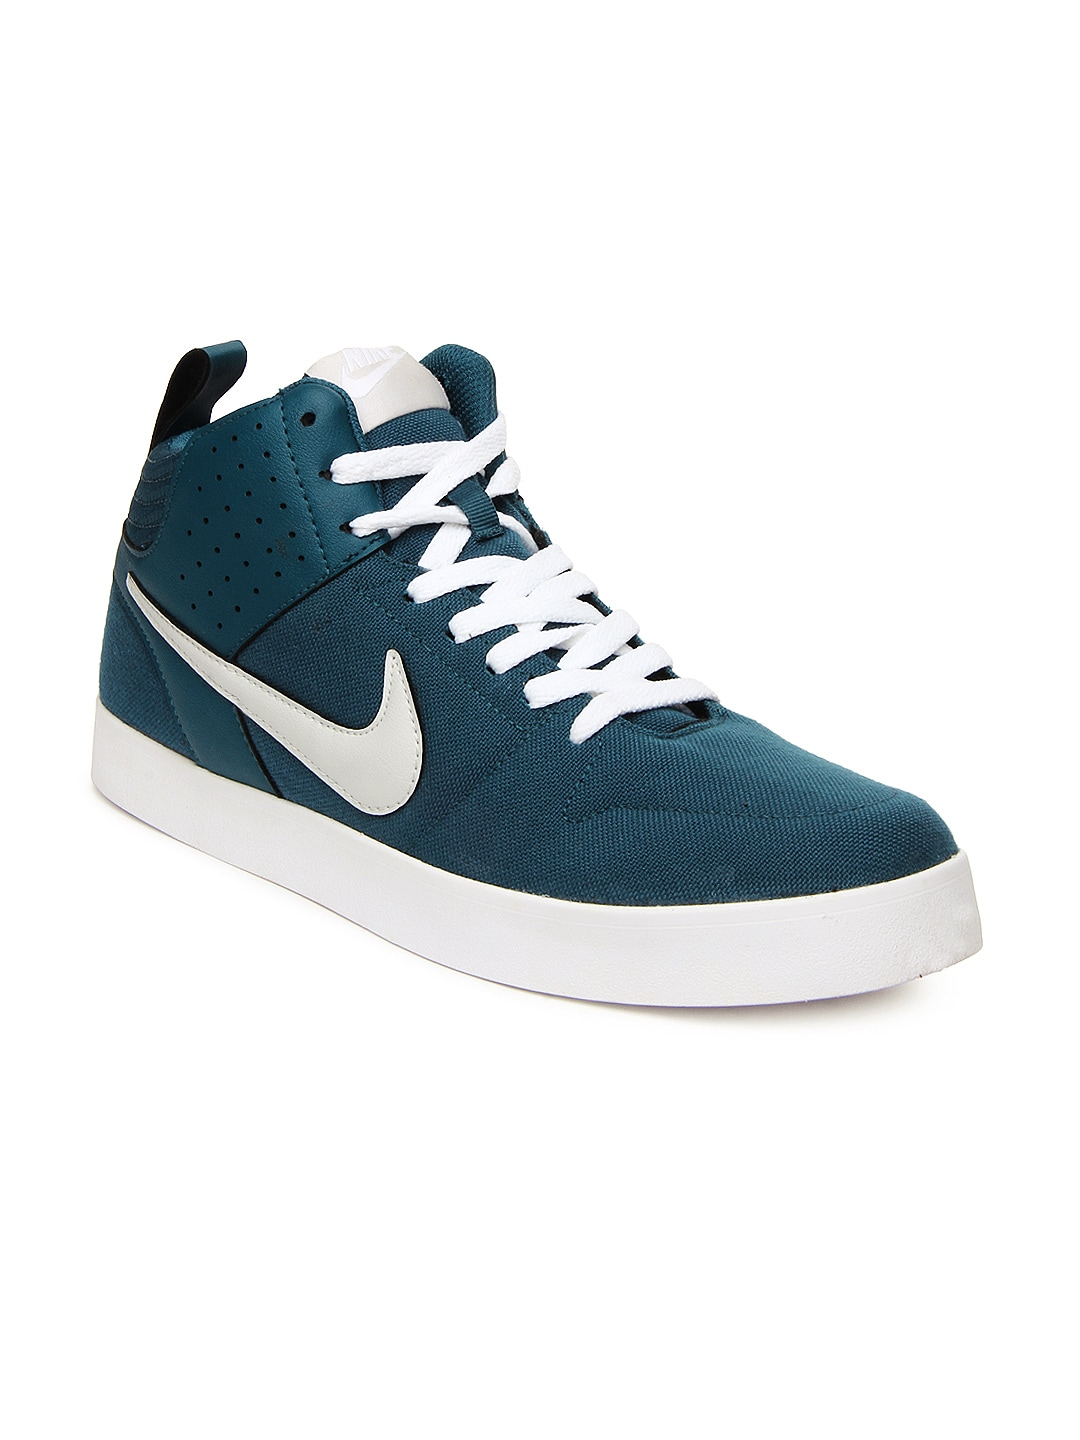 Nike Flat Shoes Online India